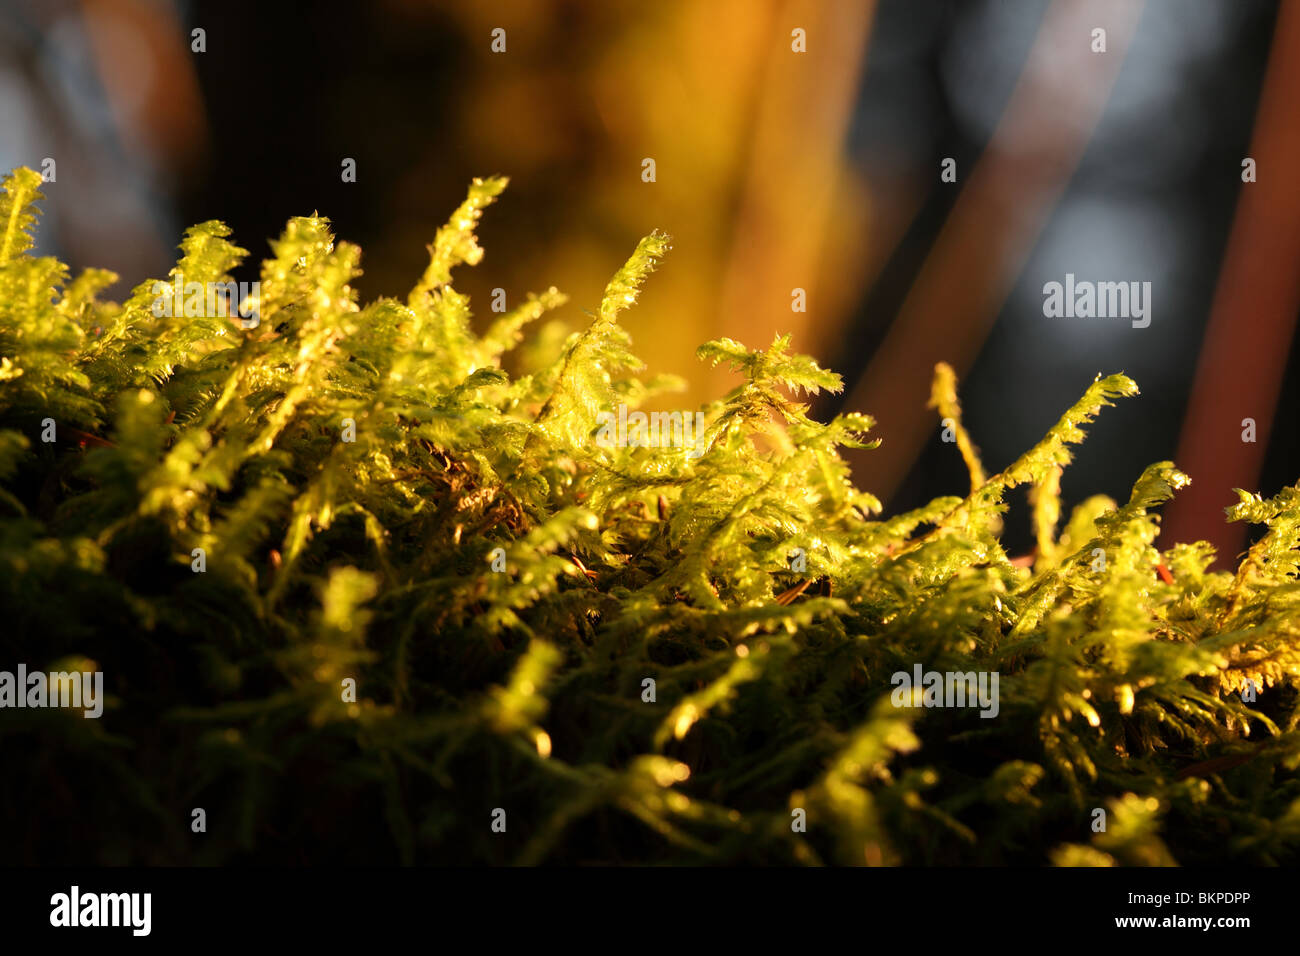 Moss growing in woods - Stock Image